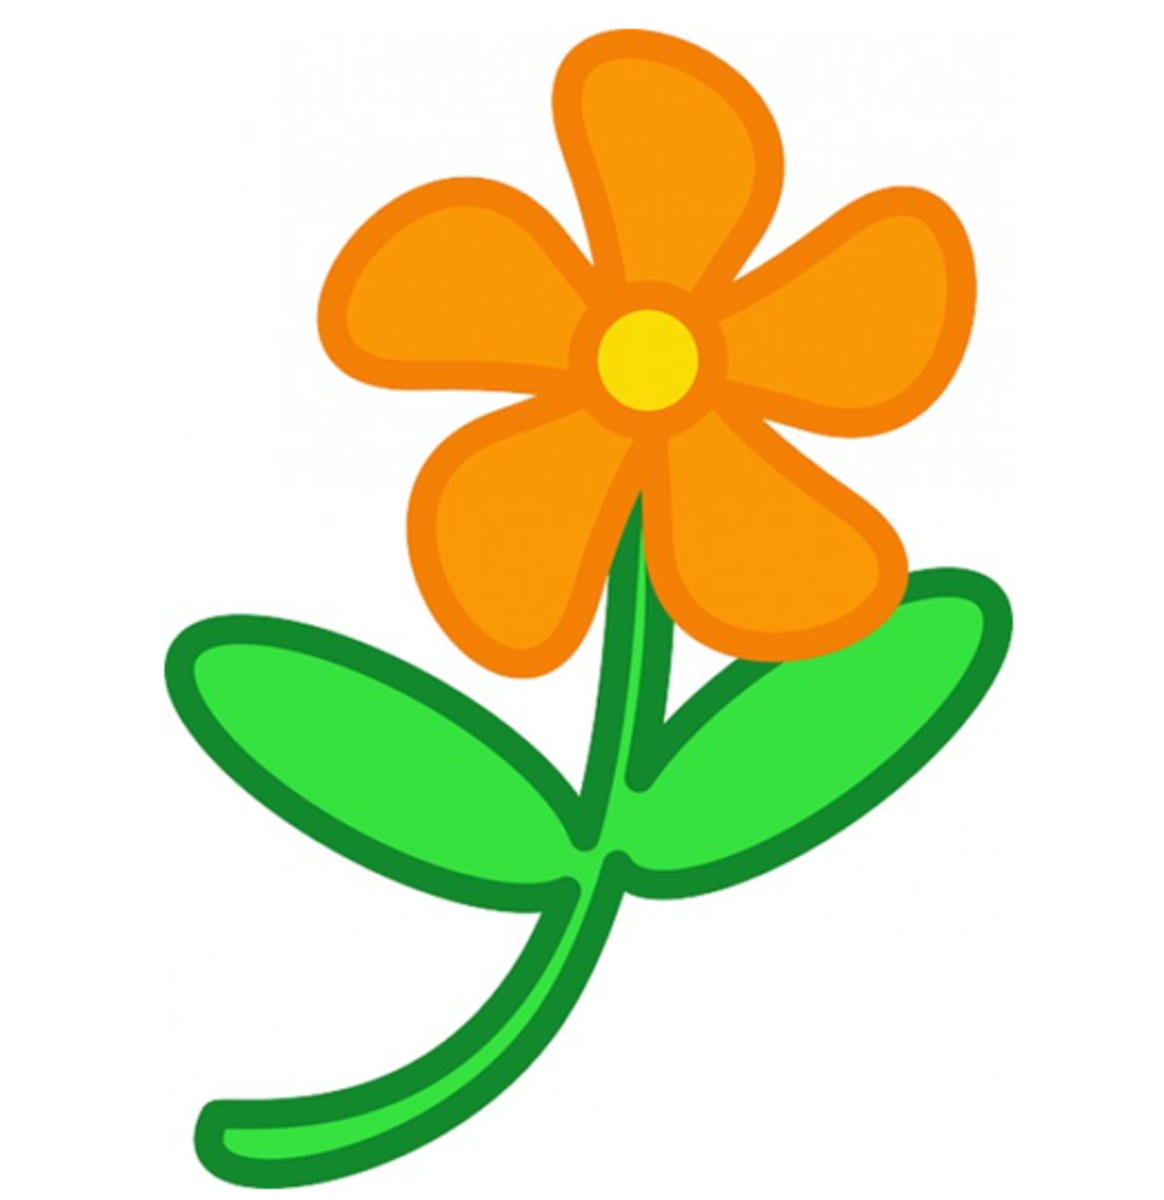 Orange Flower with Five Petals